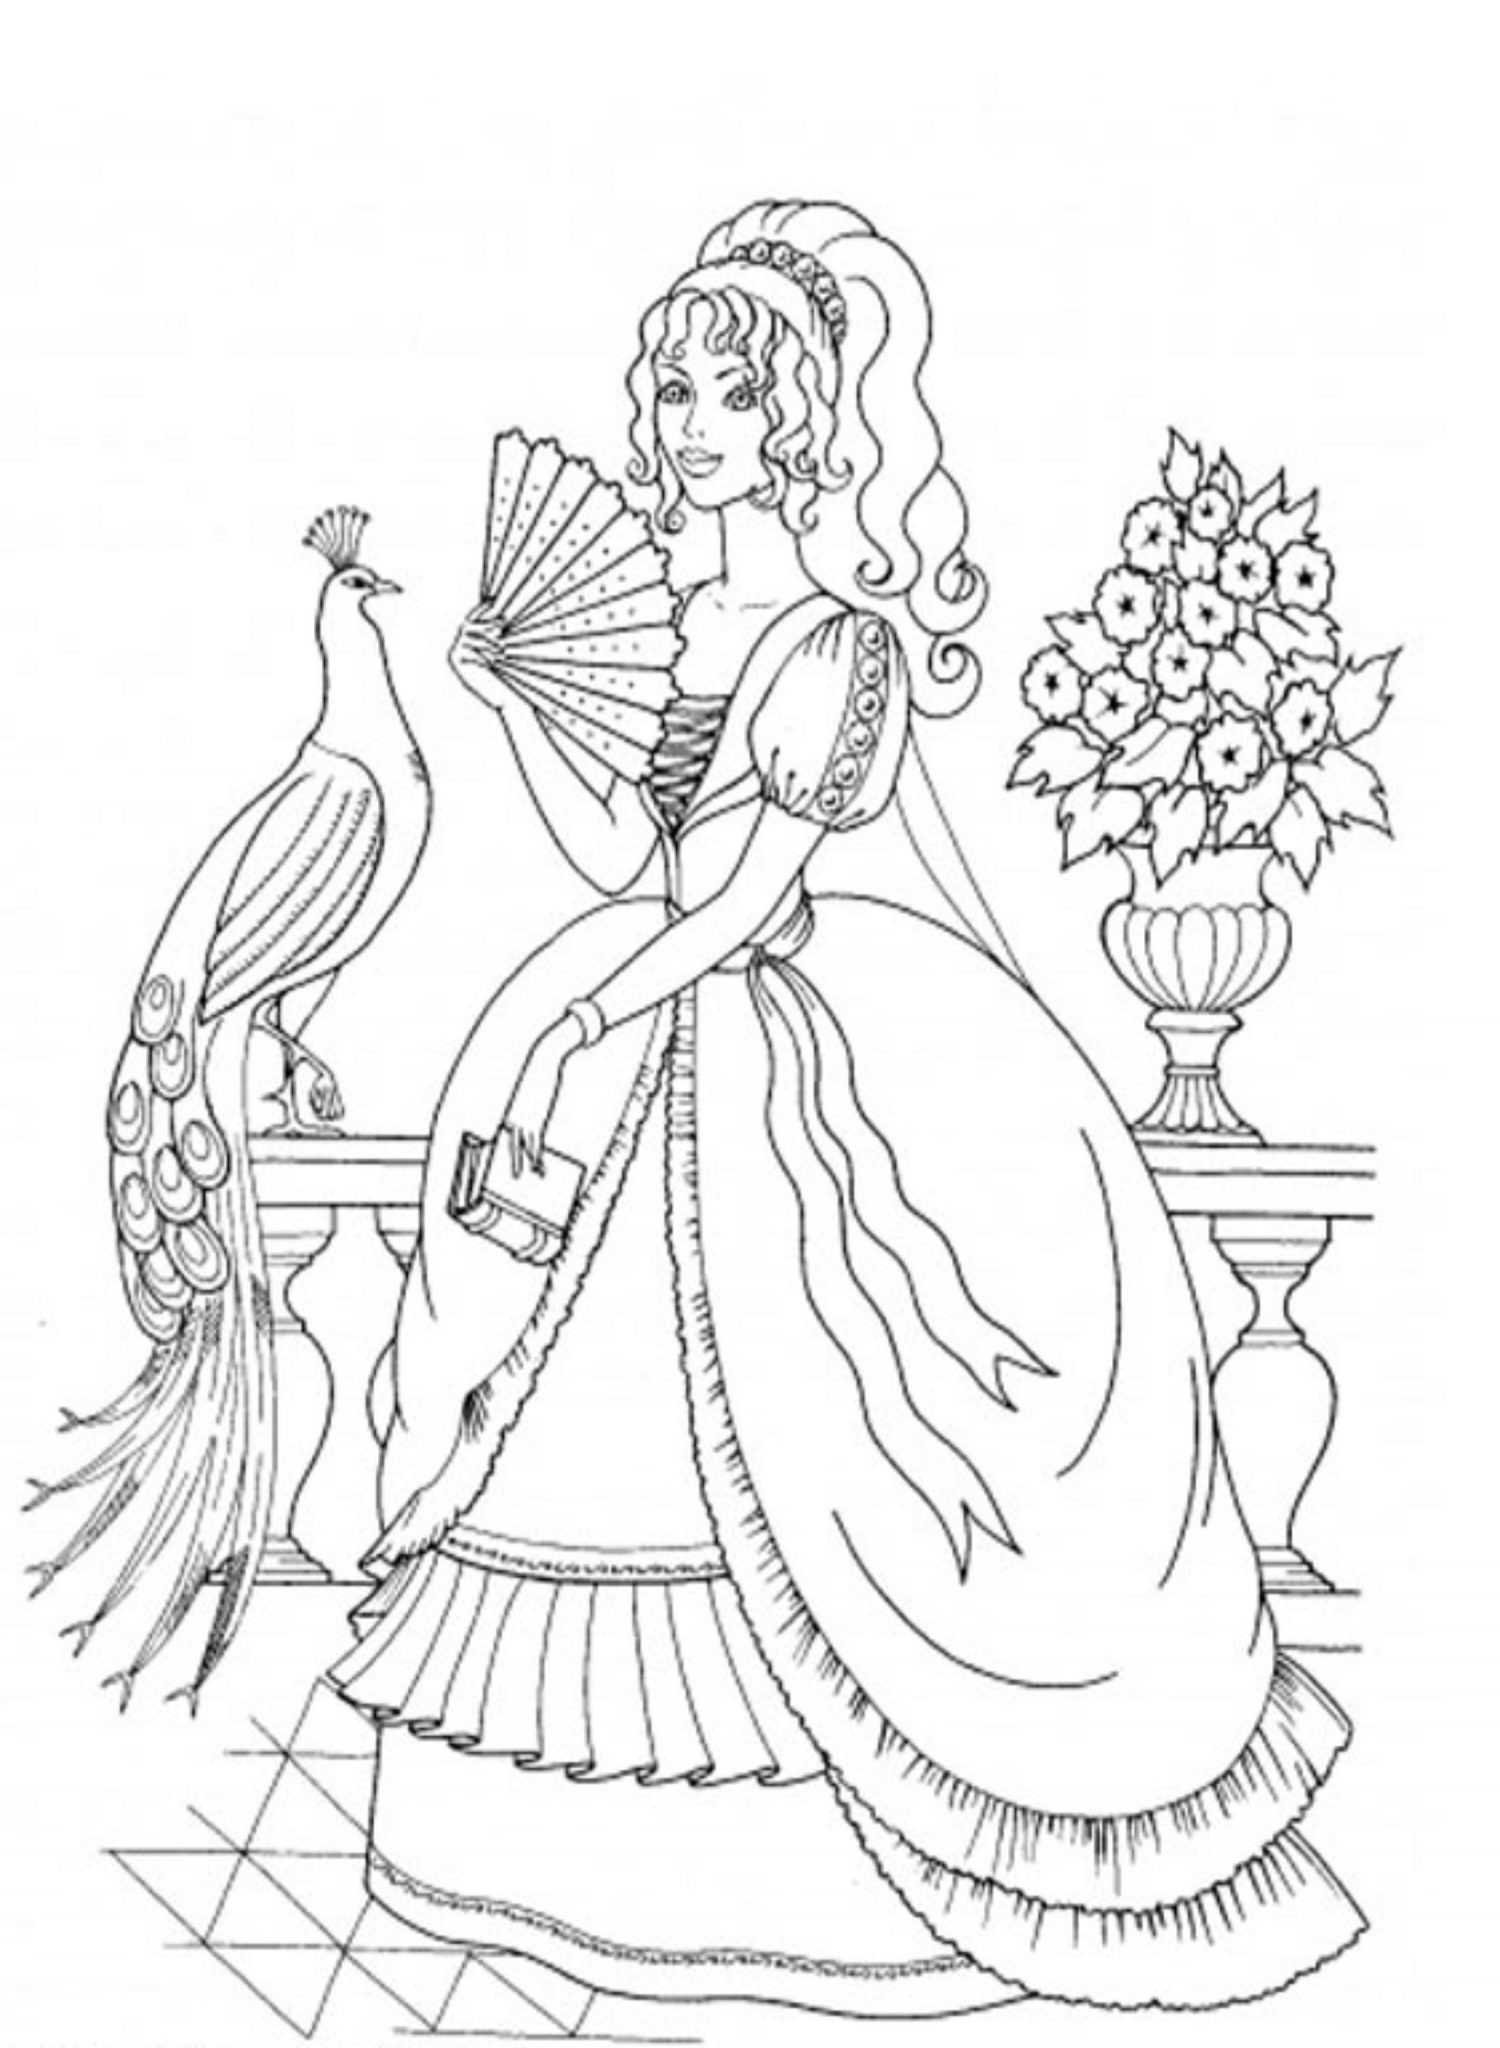 Princess Peach Coloring Pages Bestappsforkids